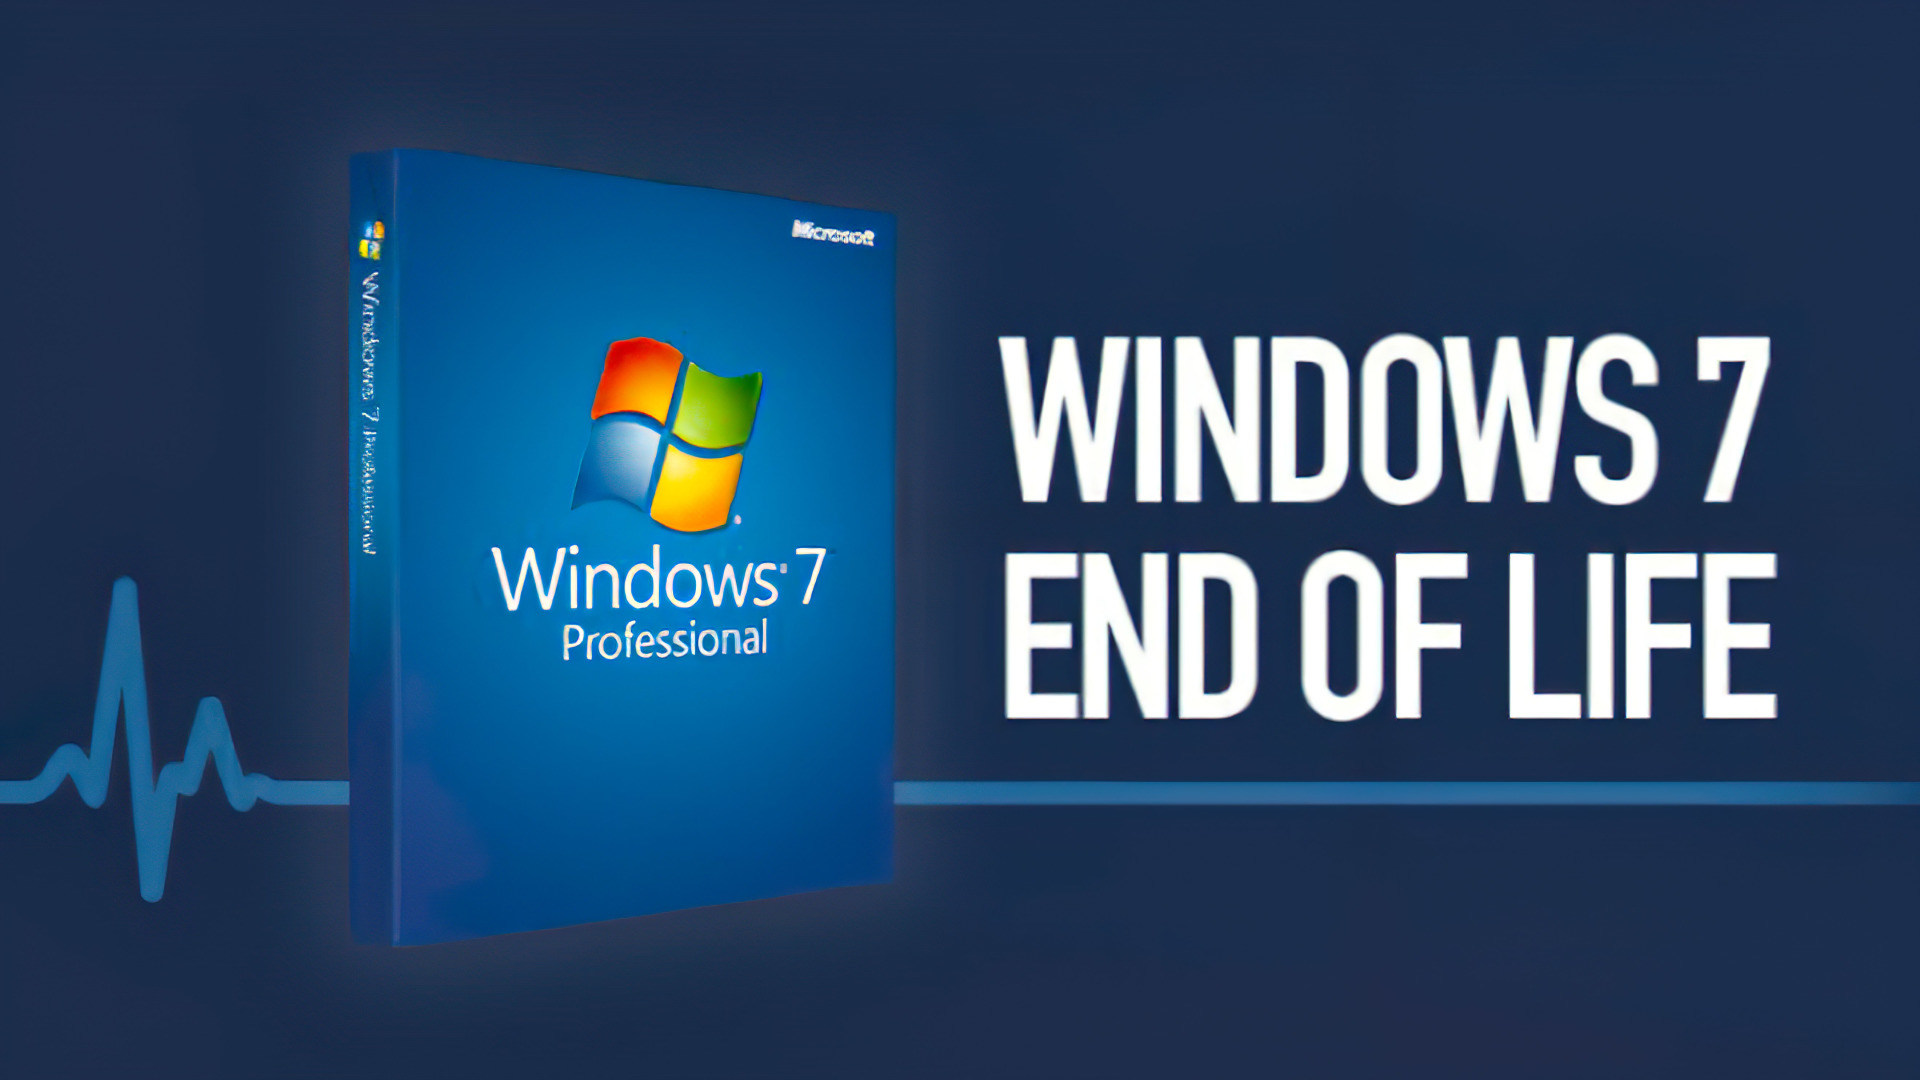 Microsoft, Betriebssystem, Windows 7, Software, Support, EOL, End Of Life